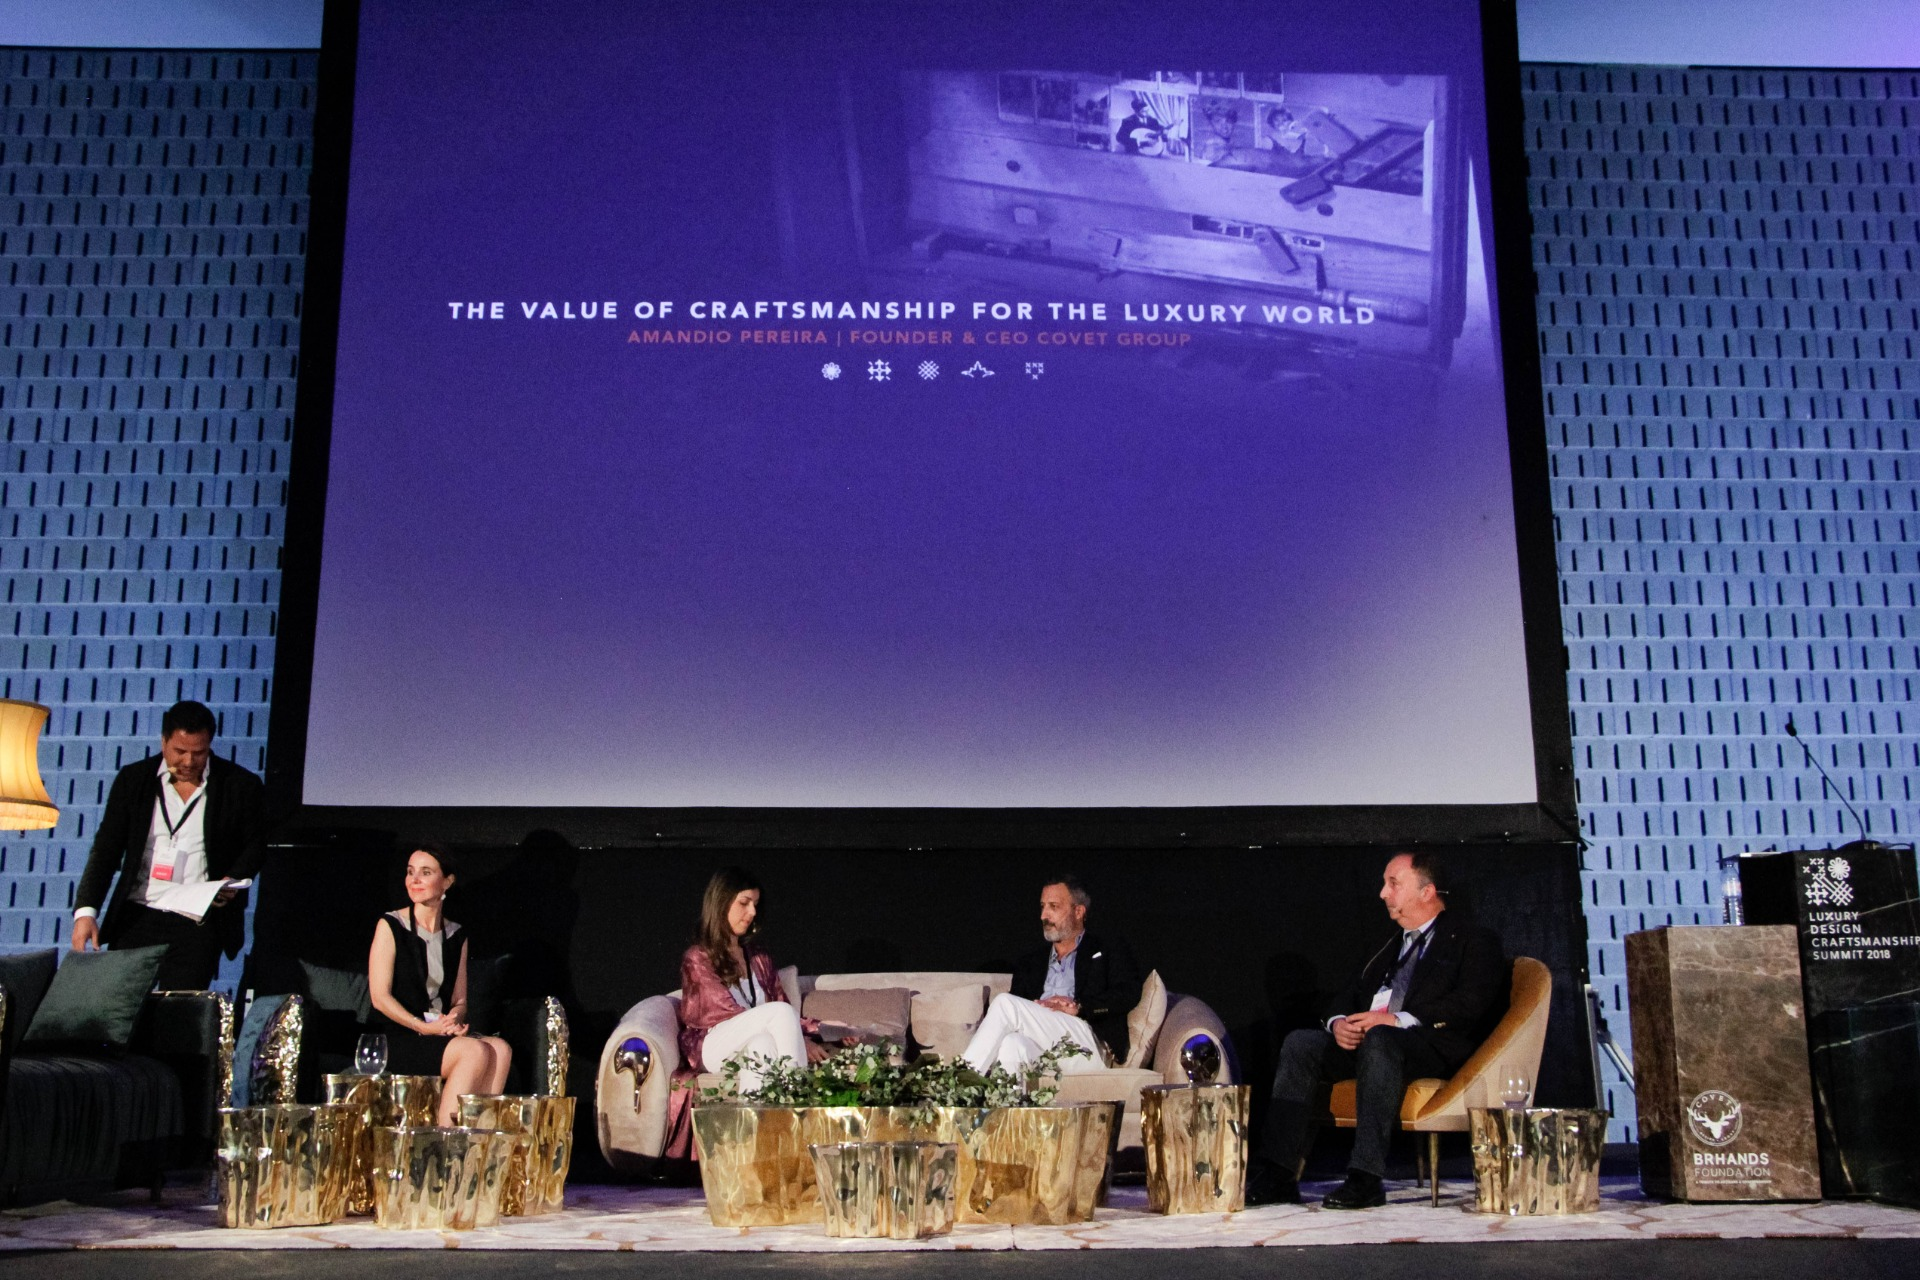 Celebrating Craftsmanship The Luxury Design+Craftsmanship Summit 2019 (5) luxury design Luxury Design+Craftsmanship Summit 2019: Celebrating Arts & Crafts in Porto Celebrating Craftsmanship The Luxury DesignCraftsmanship Summit 2019 5